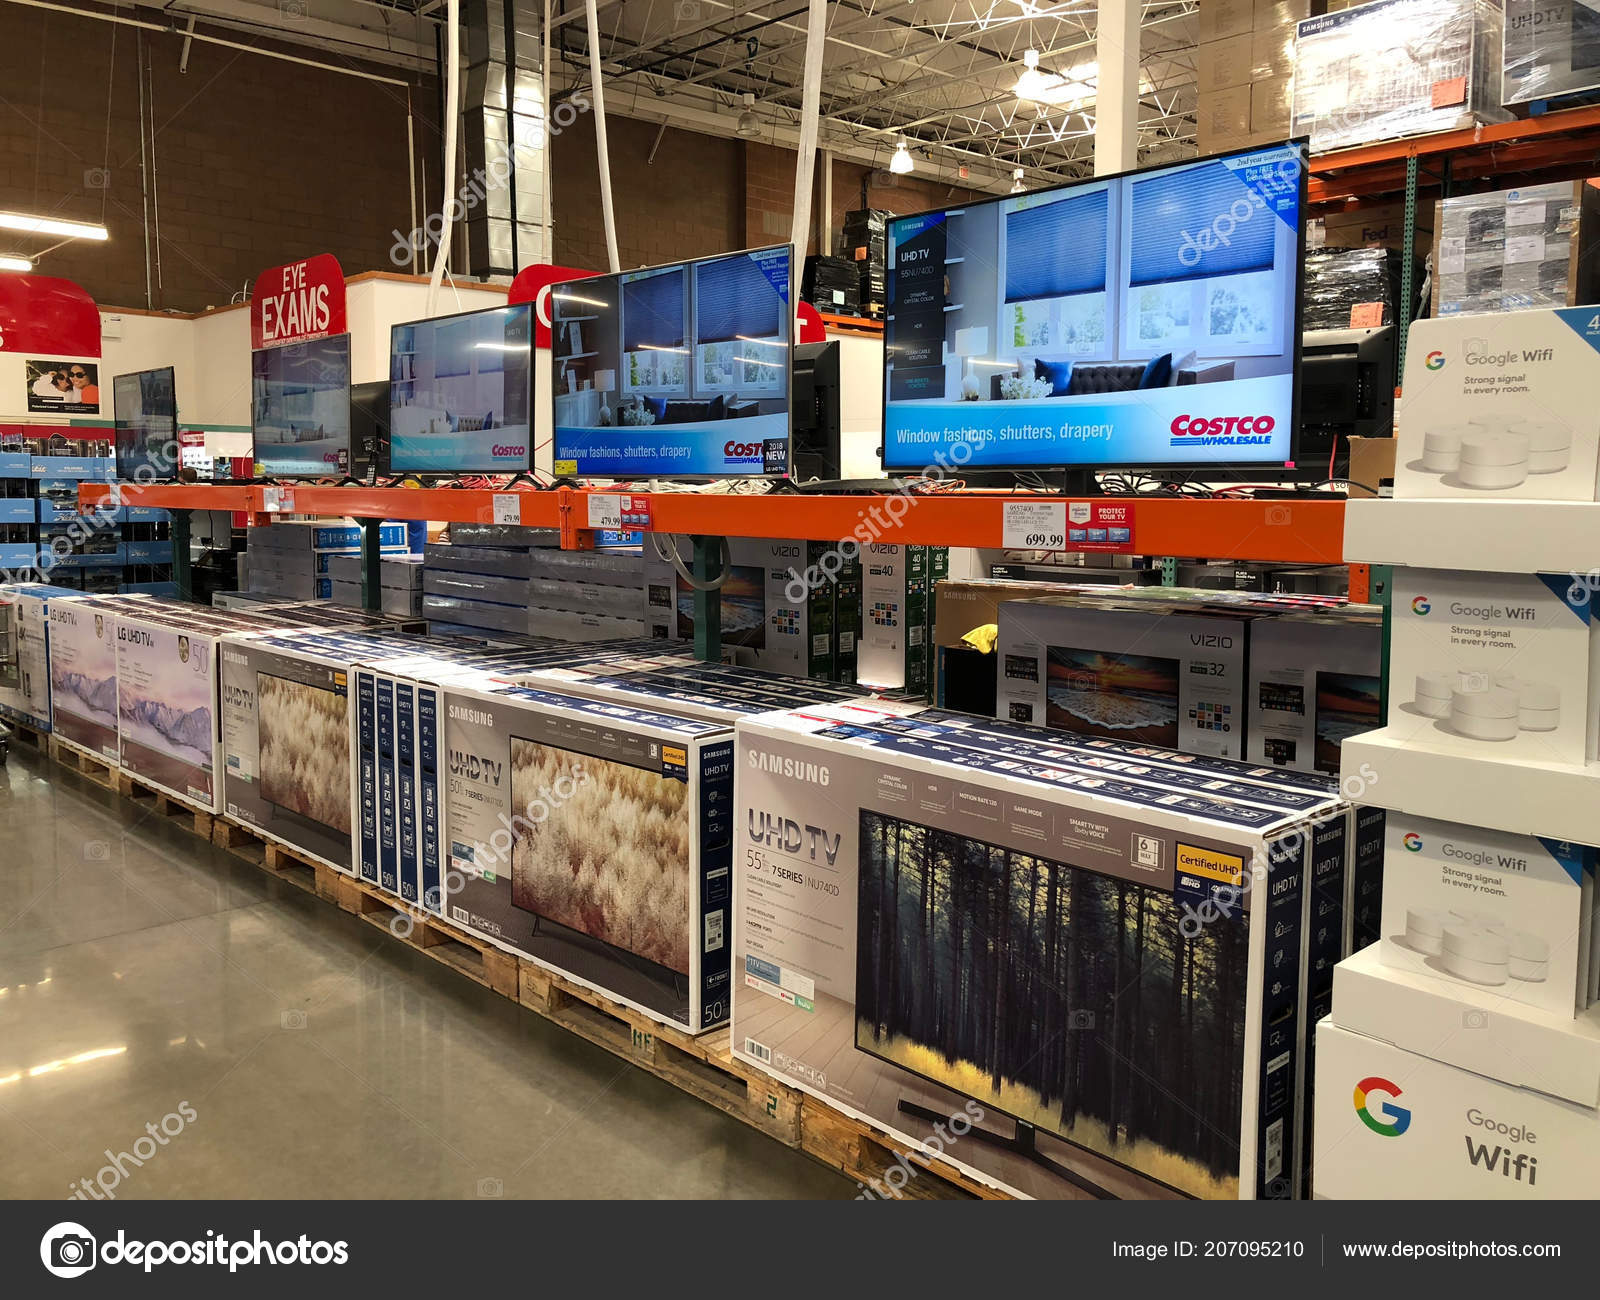 history of the costco wholesale corporation marketing essay Costco wholesale corporation, trading as costco, is an american multinational corporation which operates a chain of membership-only warehouse clubs.